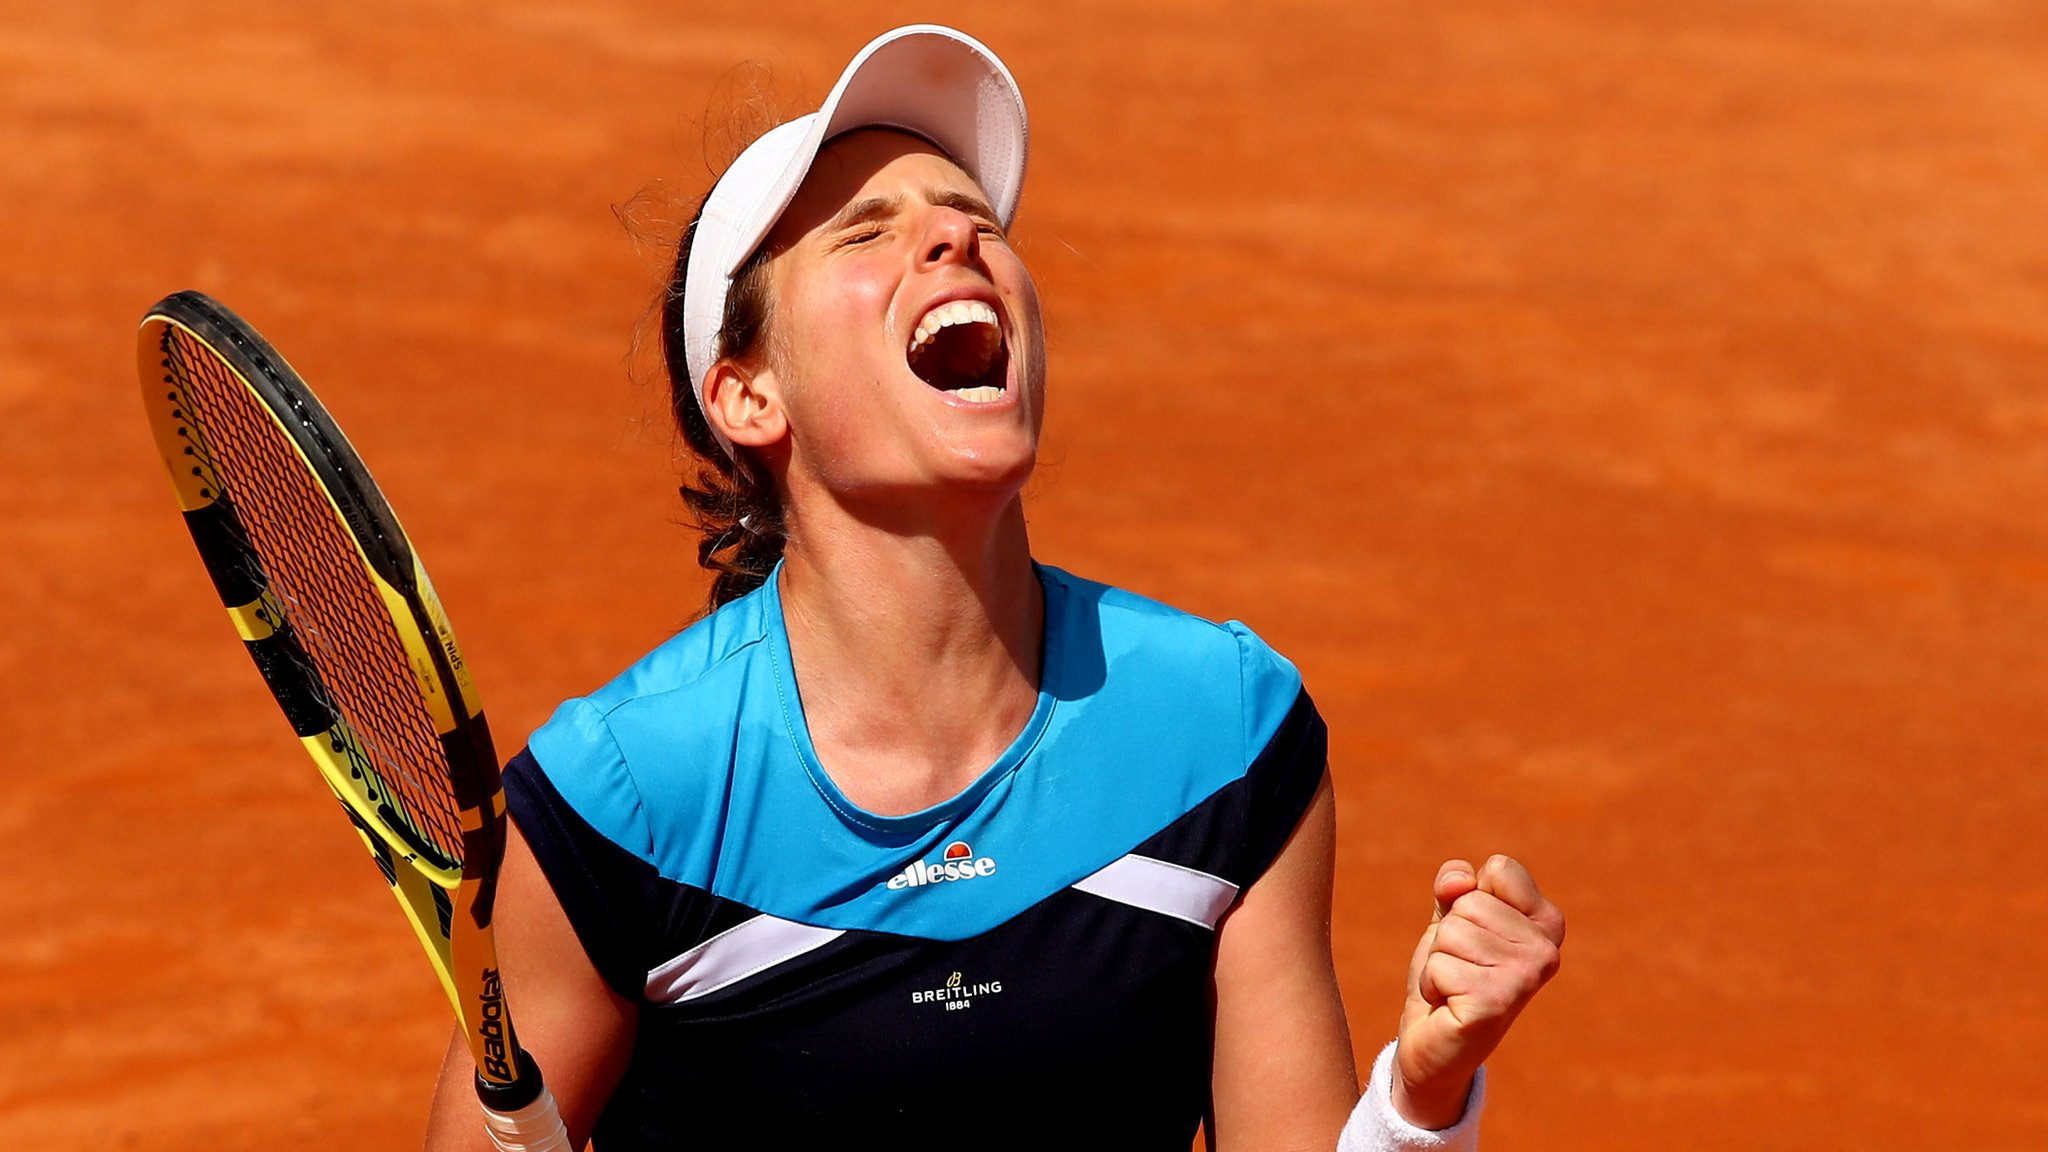 Italian Open: Johanna Konta faces Karolina Pliskova in final after beating Kiki Bertens